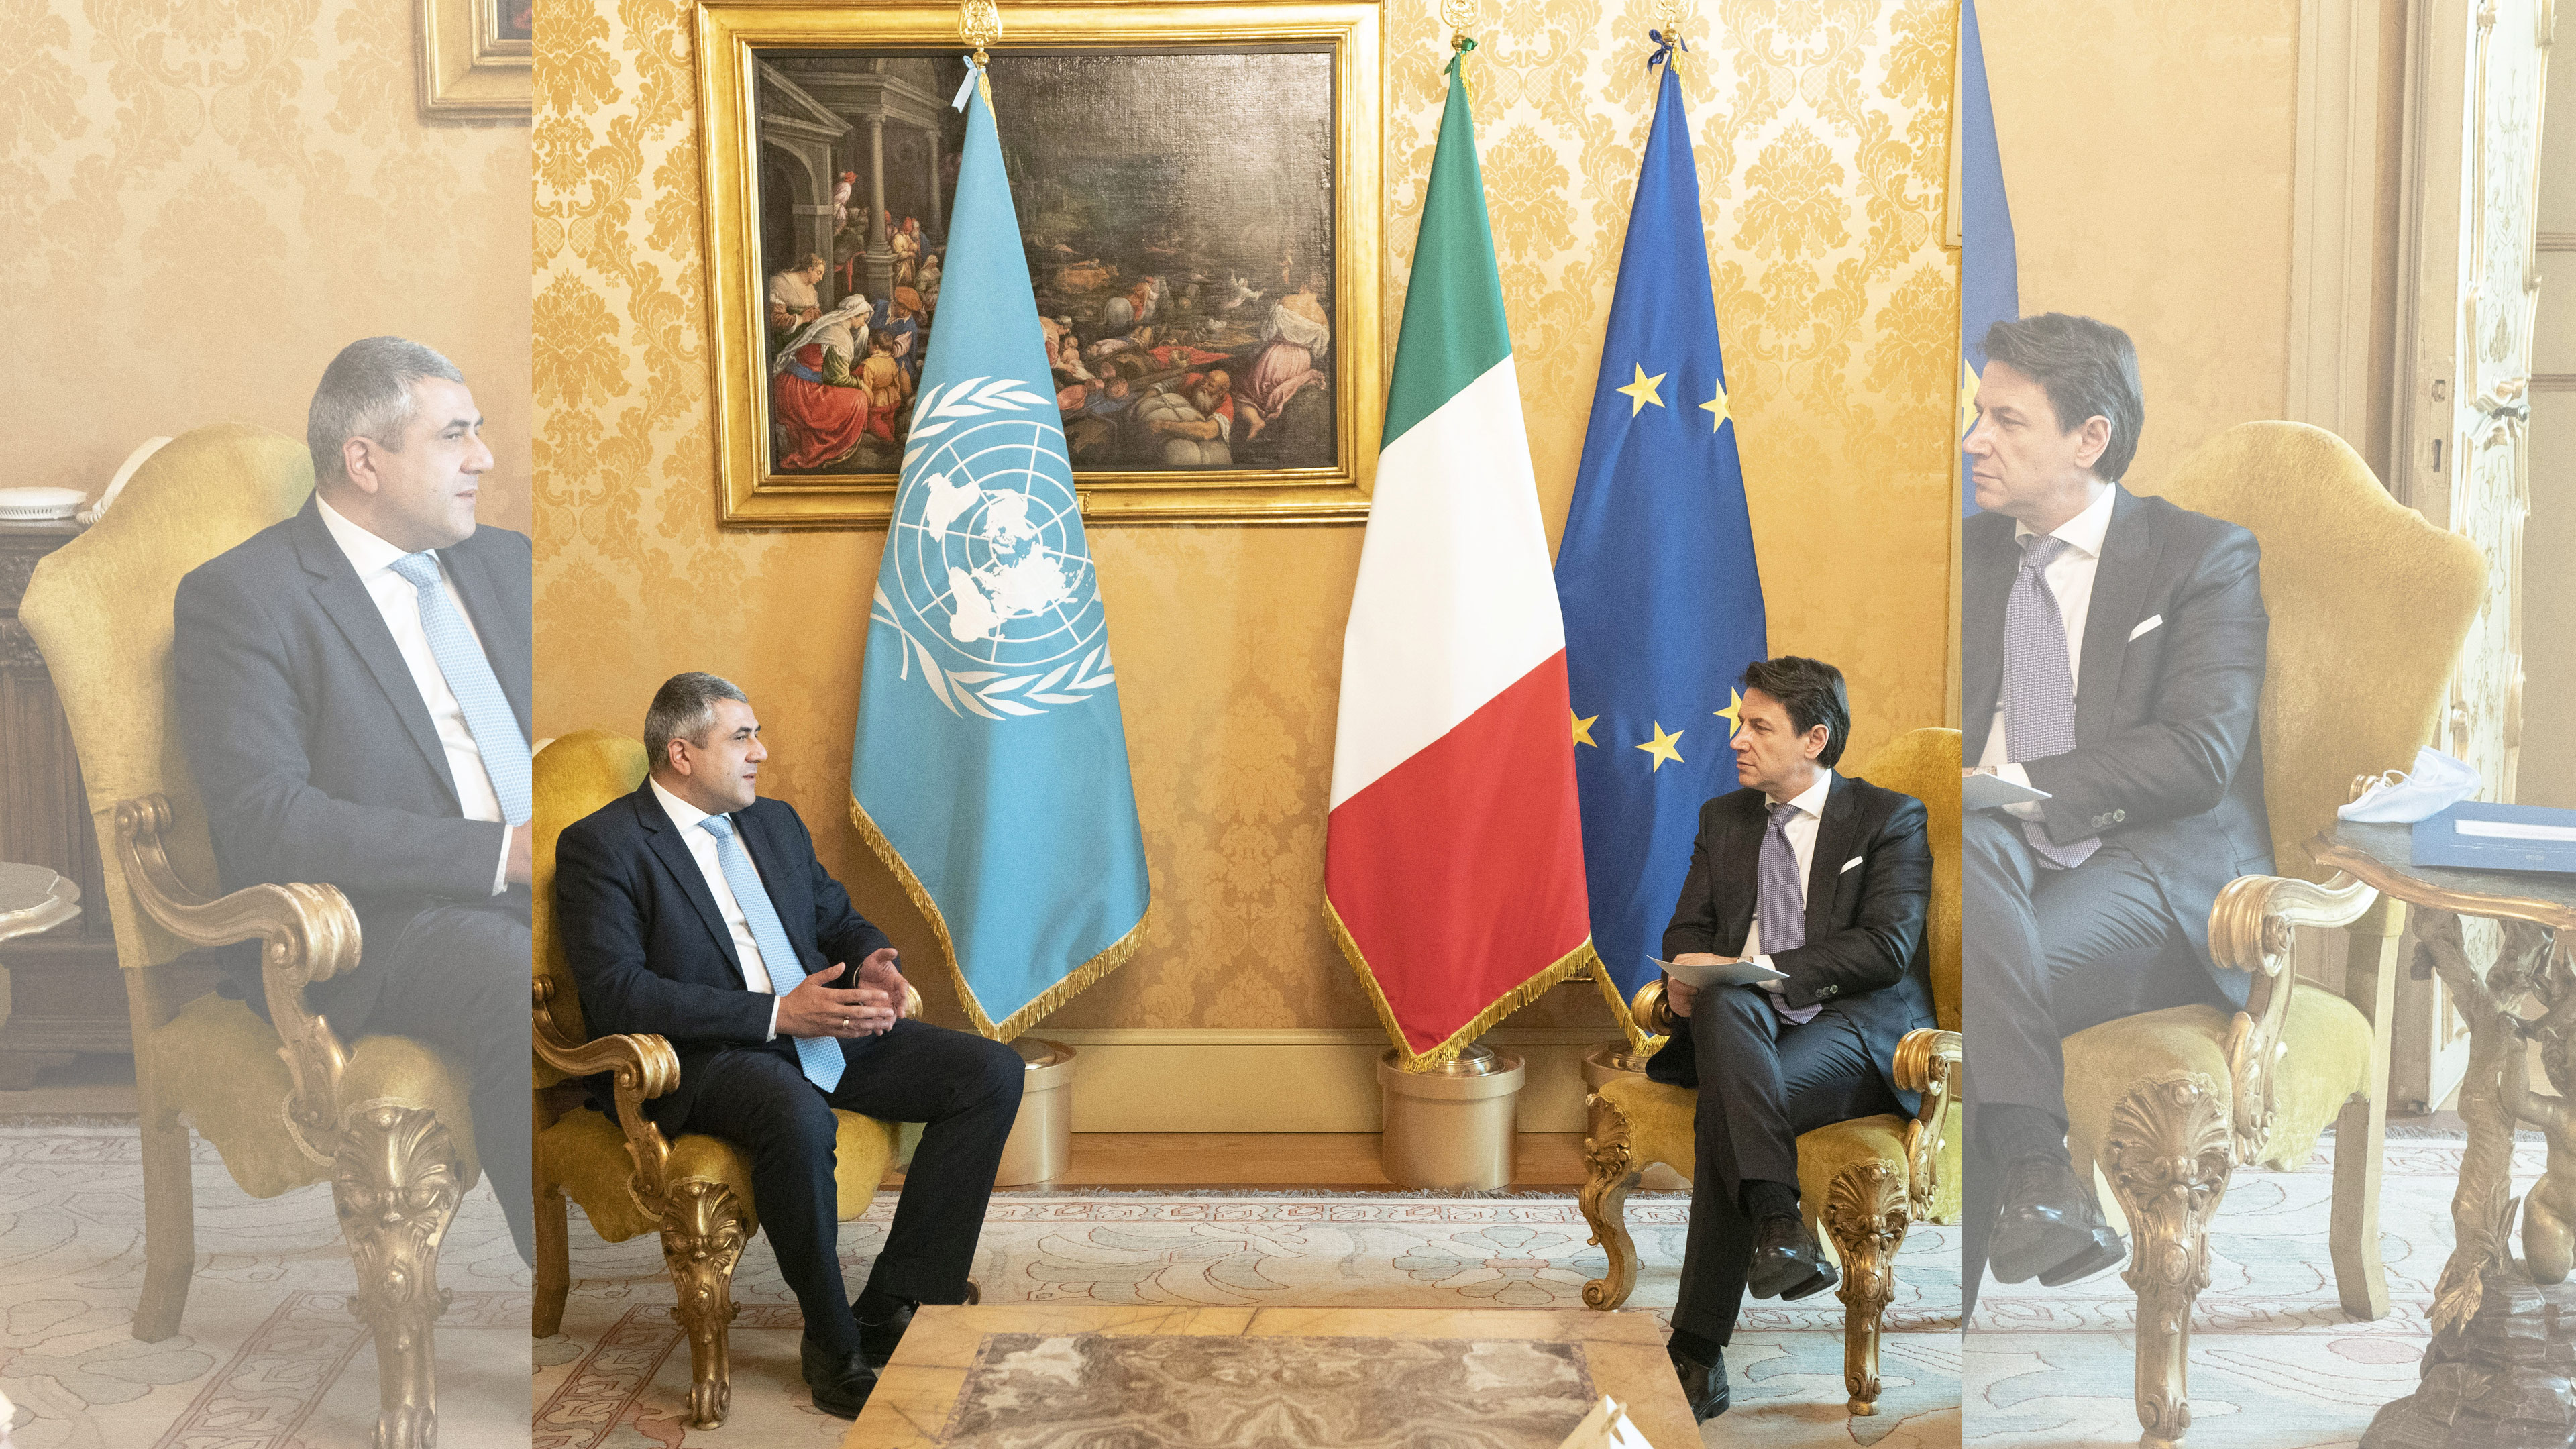 UNWTO and Italy Look Ahead as Official Visit Marks Restart of European Tourism